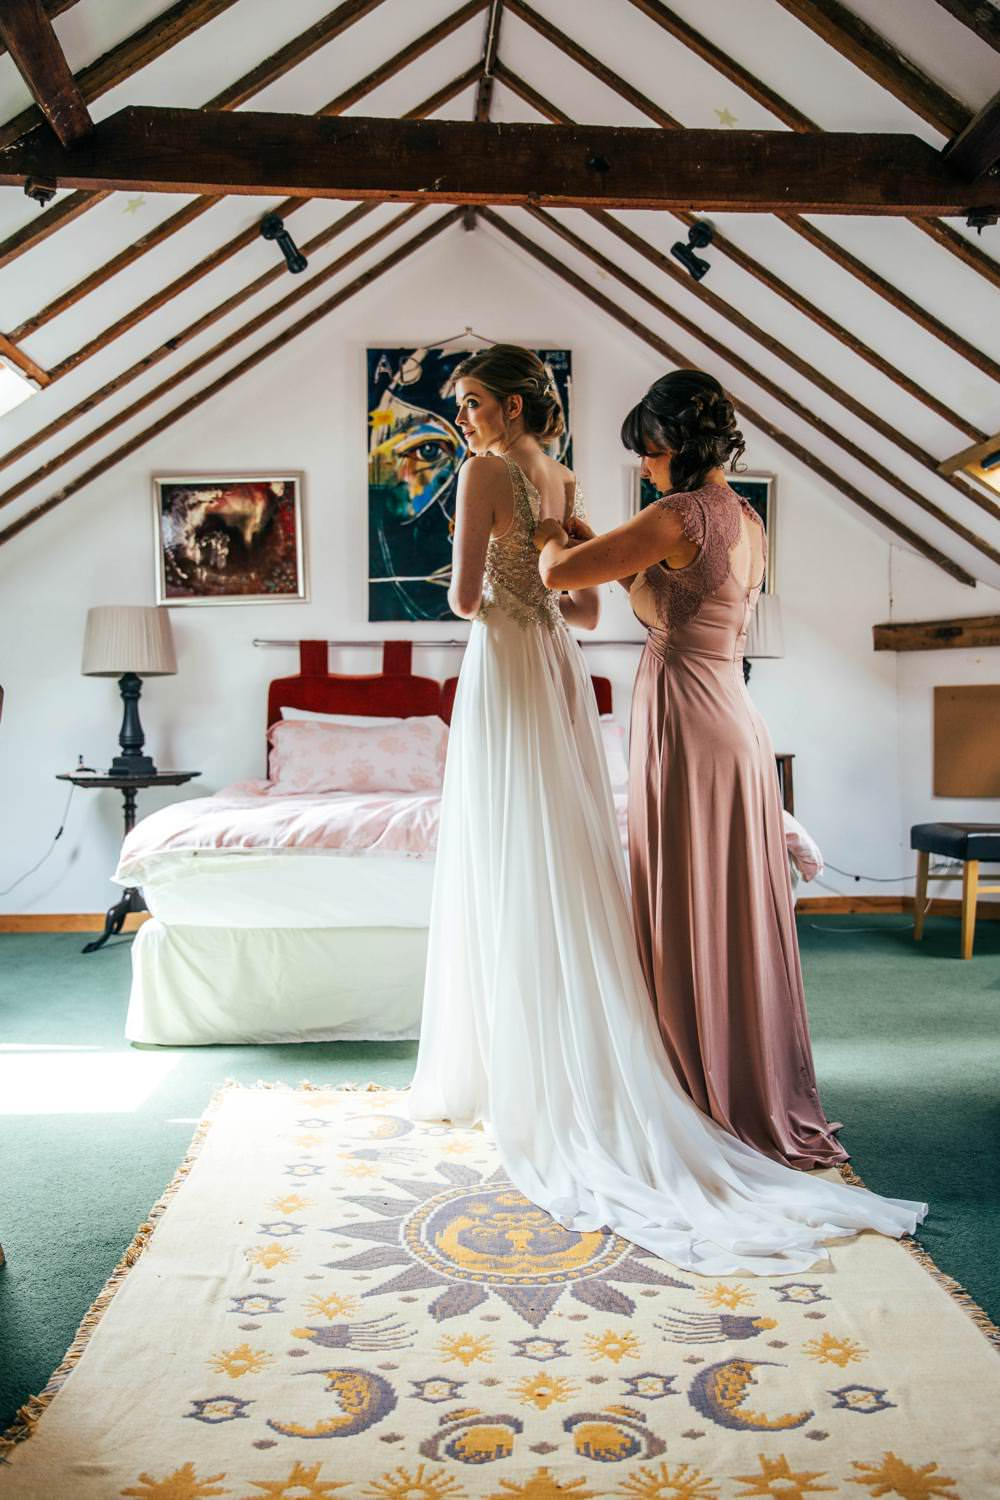 Dress Gown Bride Bridal Tulle Train Embellished Illusion Back Long Barn Wedding Three Flowers Photography